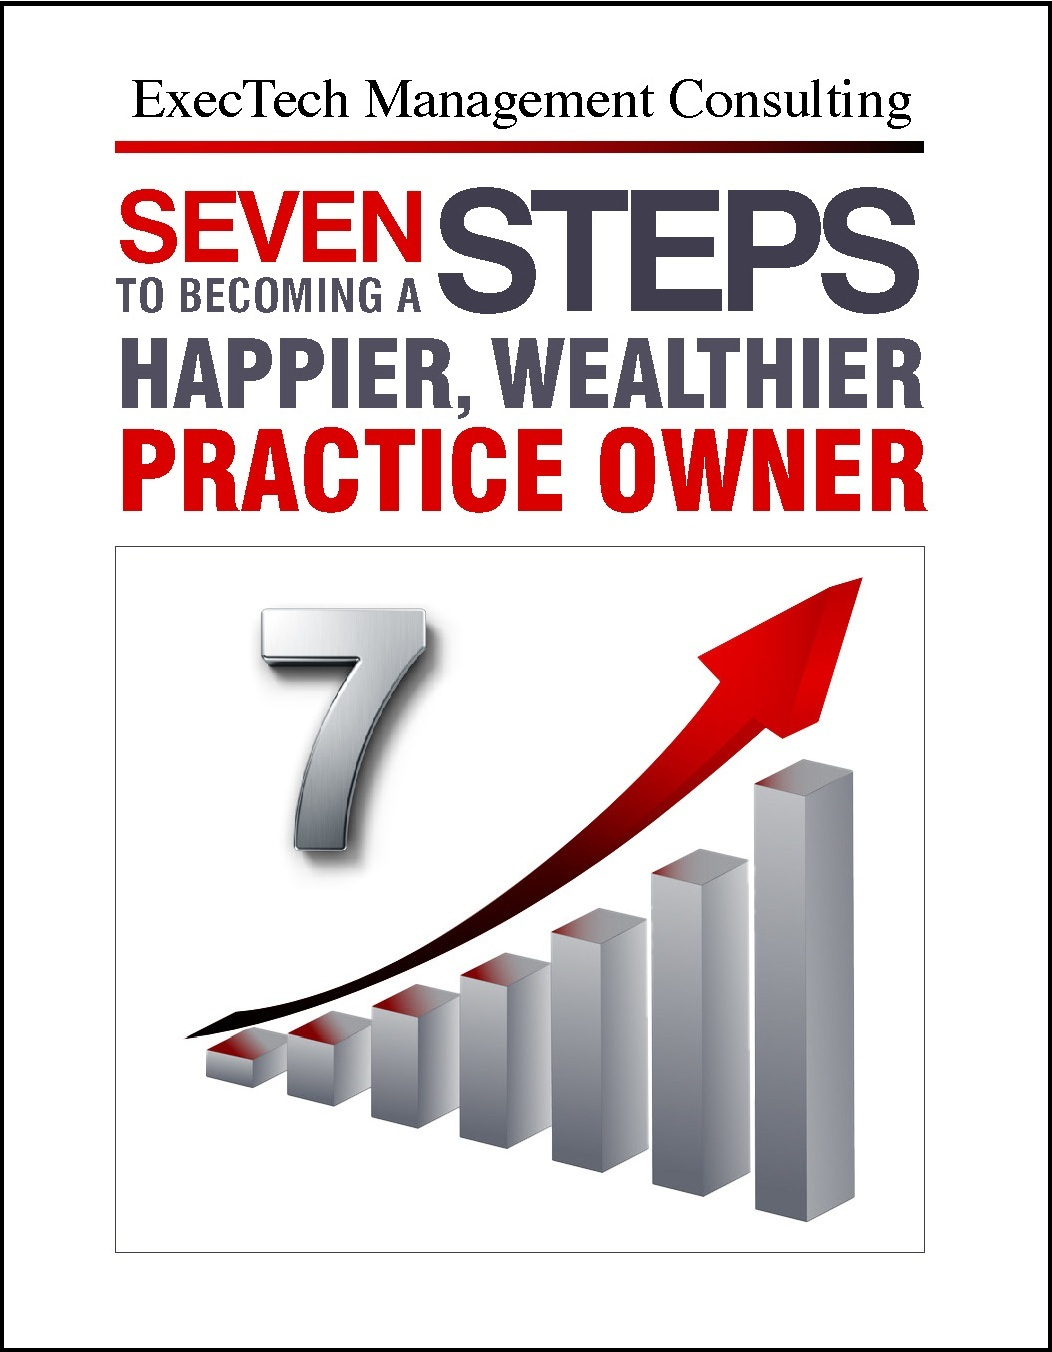 Free E Booklet On Happiness And Wealth. U201cSeven Steps To Becoming A ...